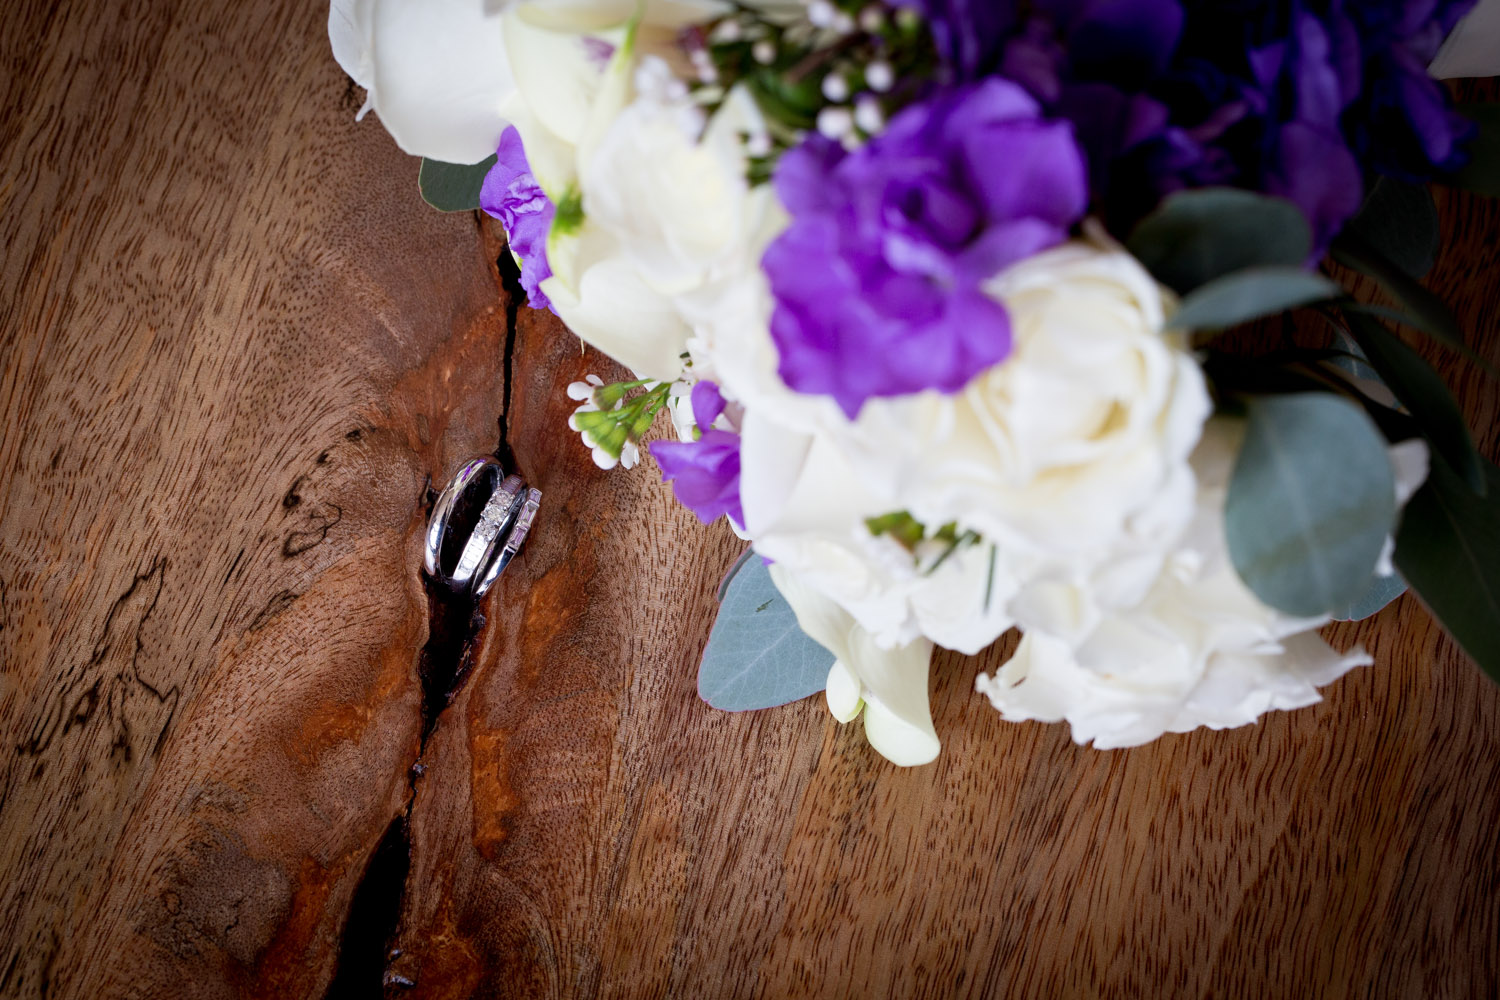 06-cornerstone-studios-wedding-professionals-small-events-details-flowers-purple-white-bridal-bouquet-rings-mahonen-photography.jpg